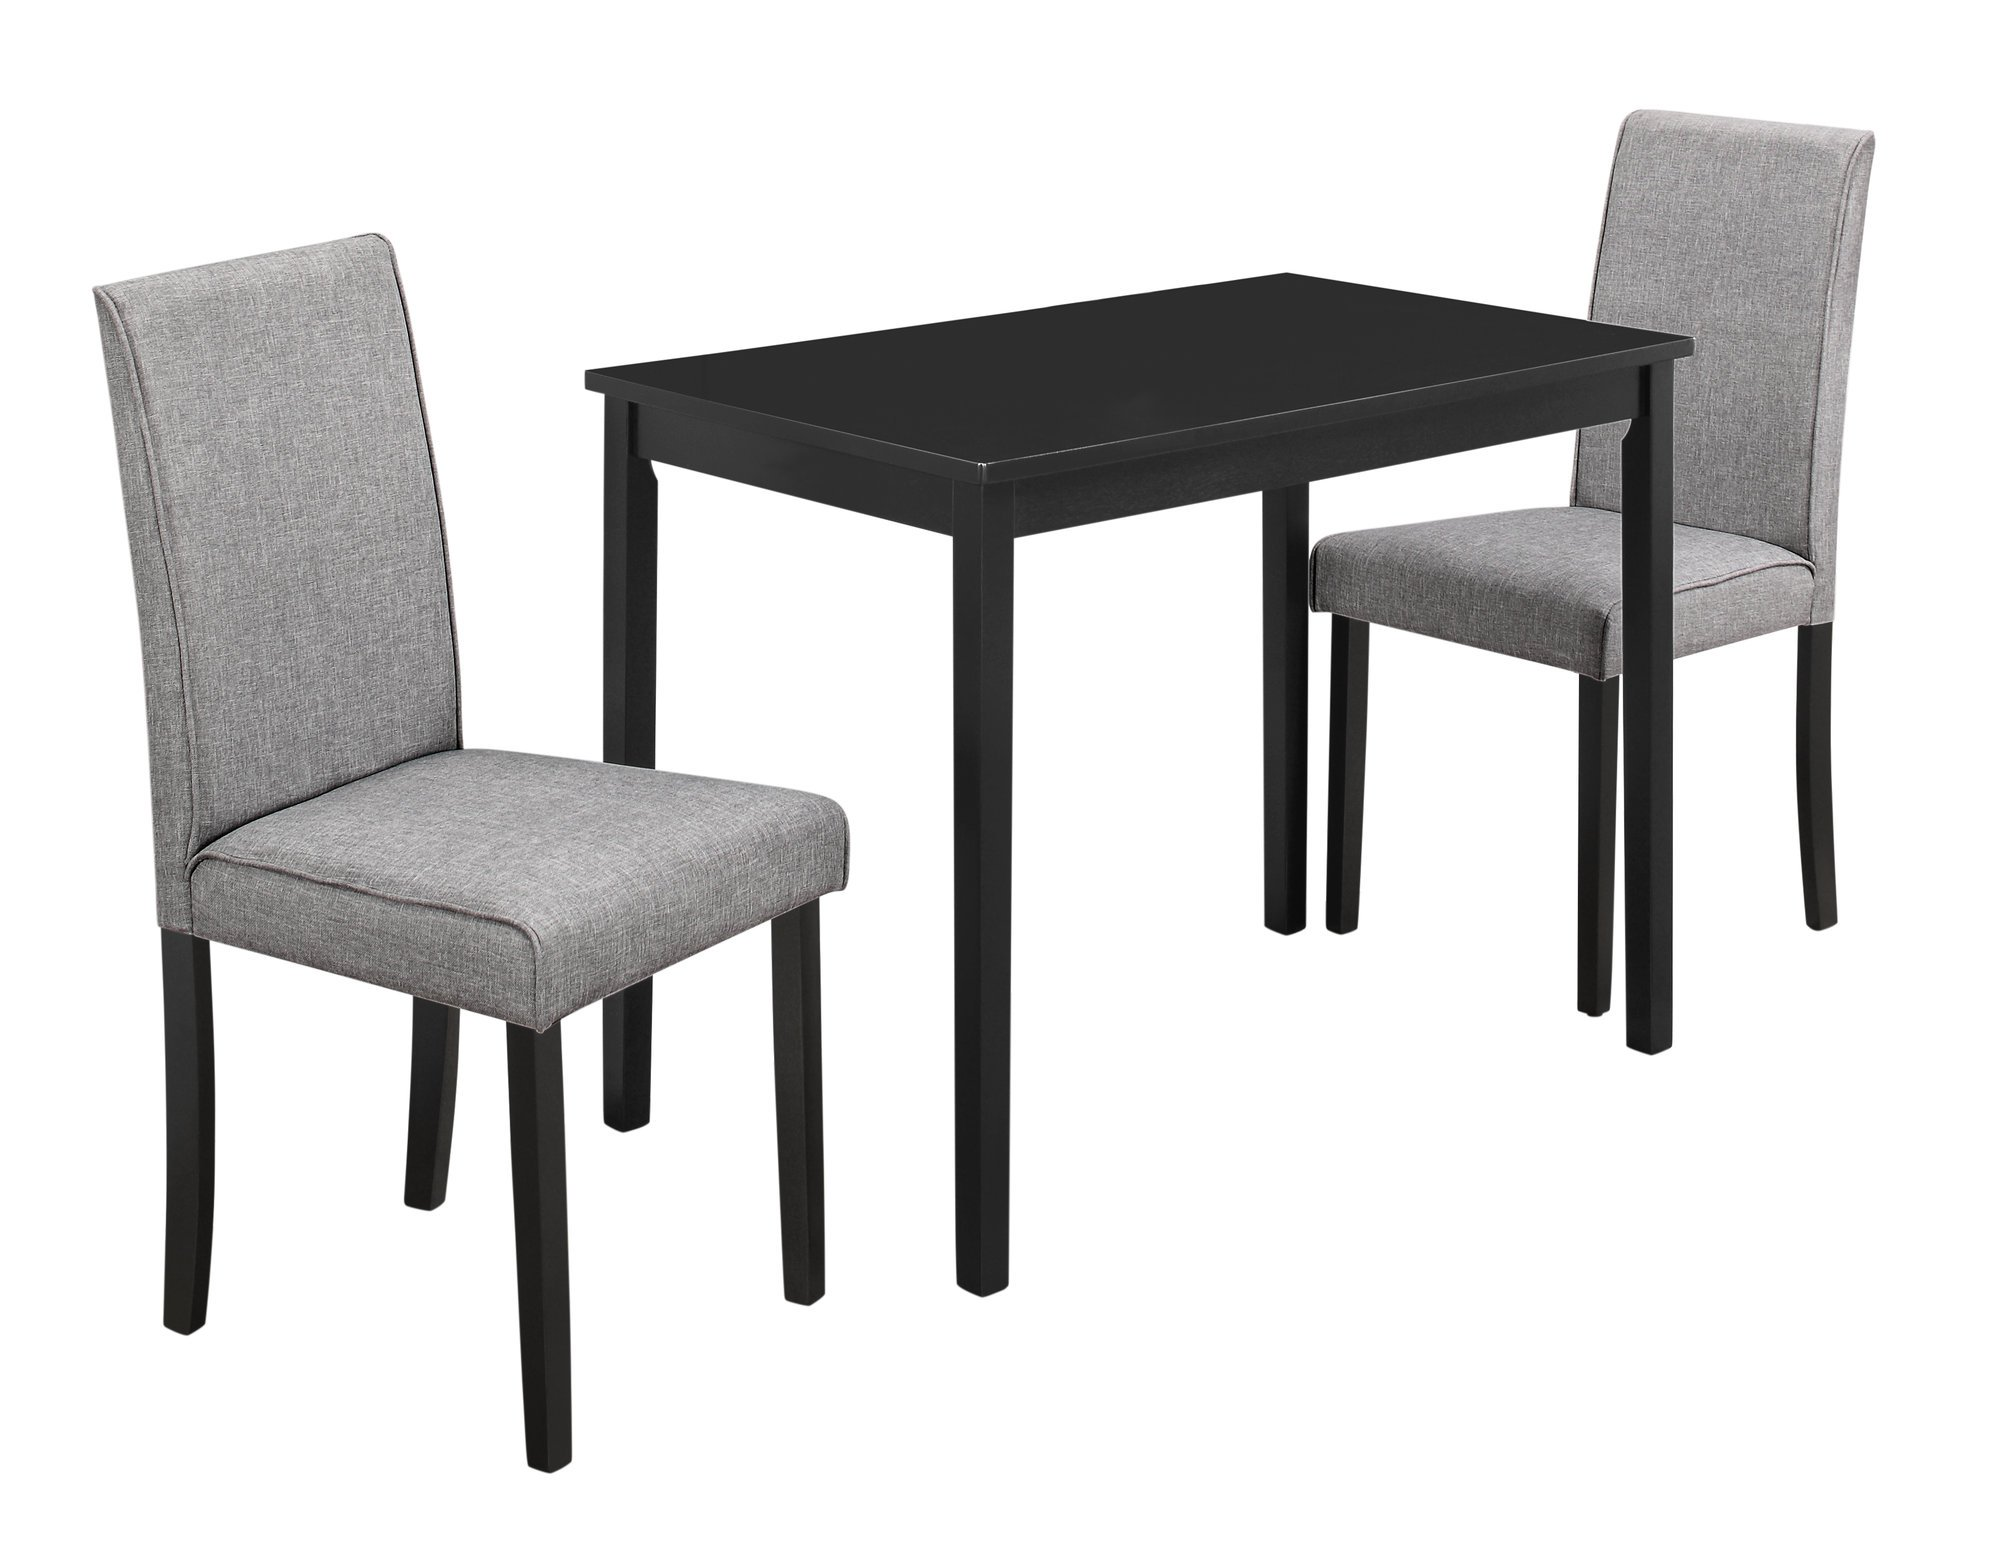 Monarch Specialties I 1016, Dining Set Set, Parson Chairs, Black/Grey, 3pcs by Monarch Specialties (Image #2)